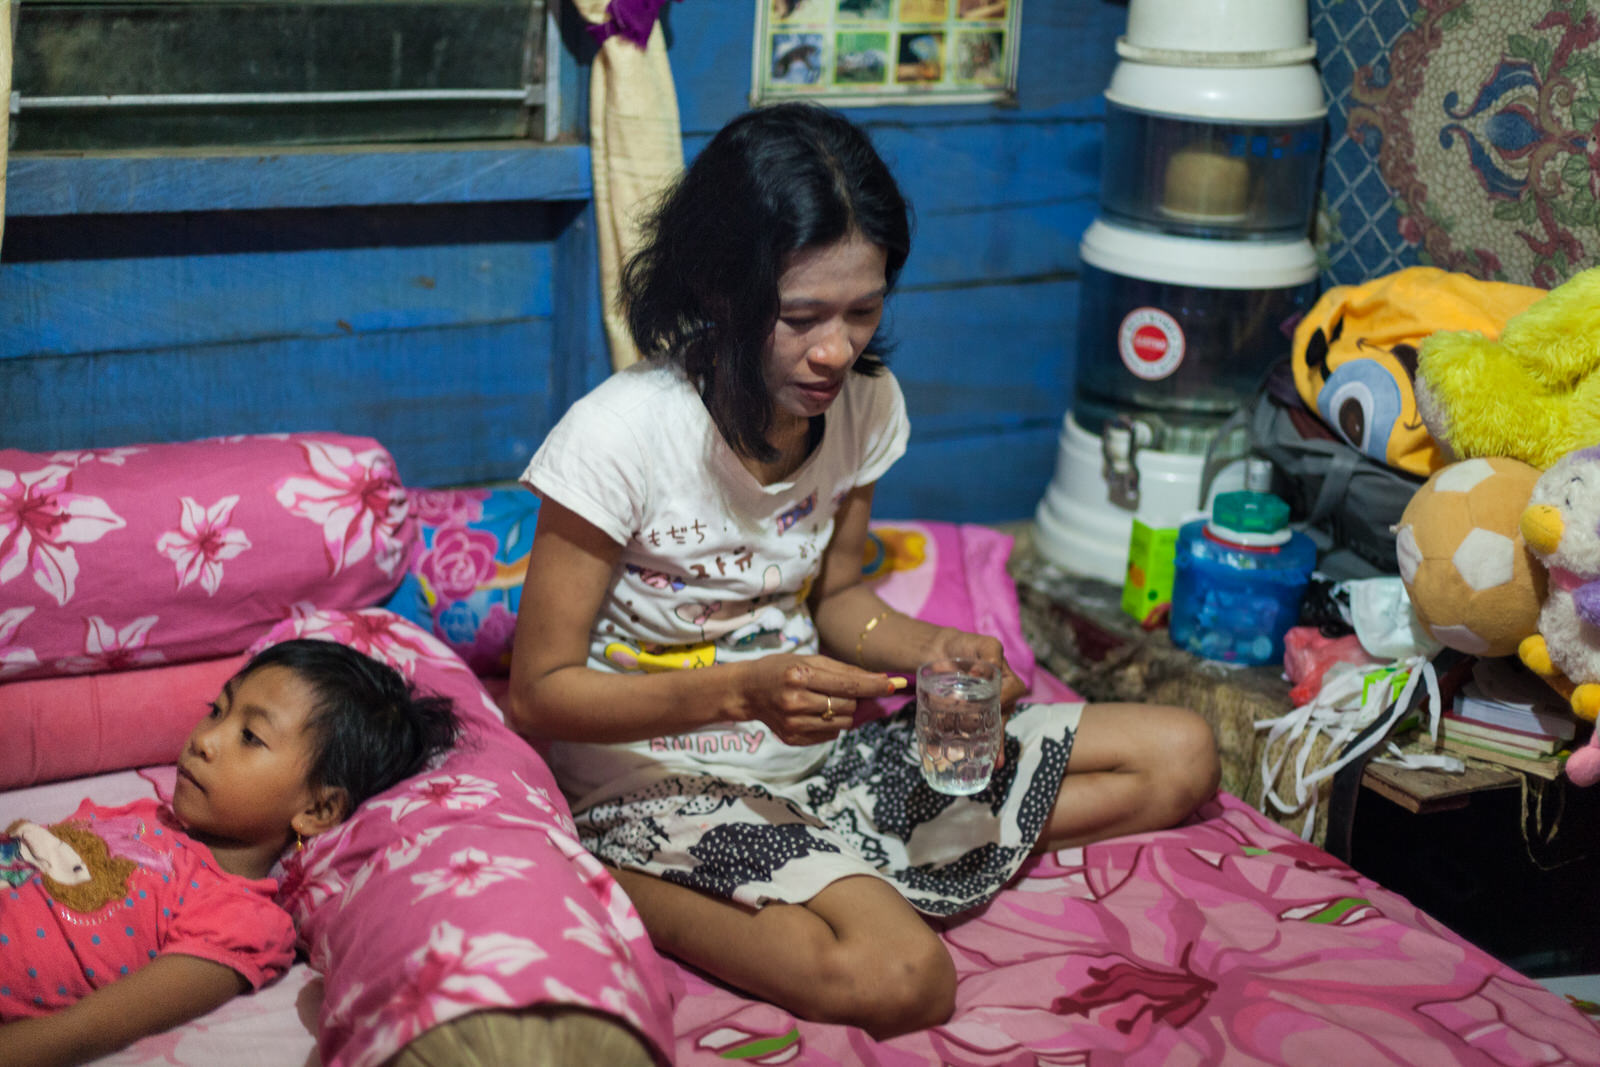 Ibu Ratna takes ARV (Antiretroviral medicine) before going to sleep.  She has been on ARV for 5 years.